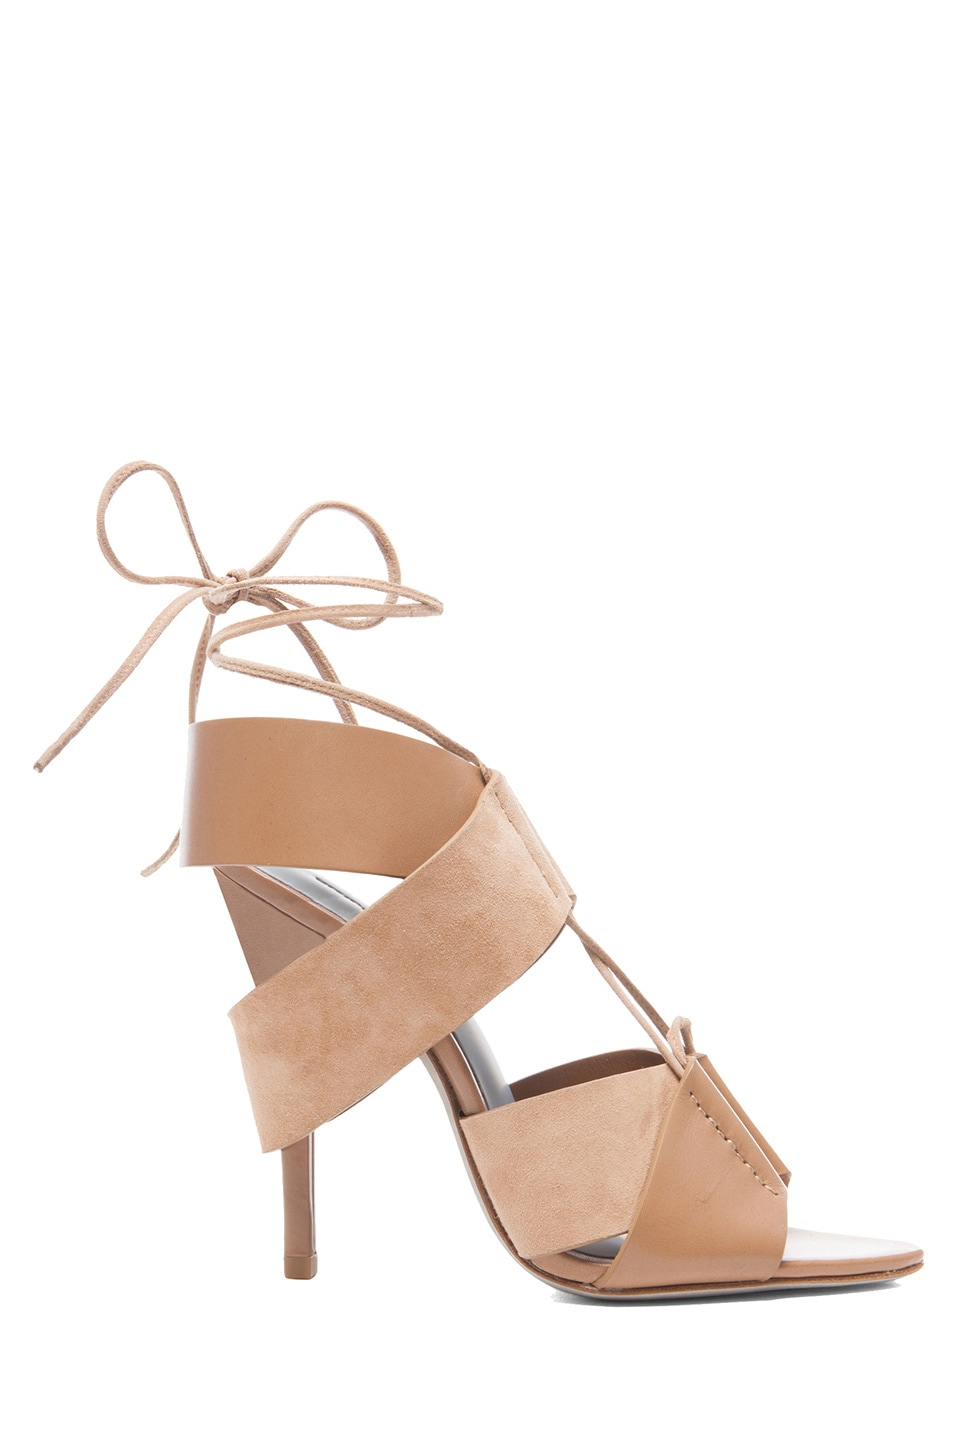 Image 1 of Alexander Wang Malgosia Leather & Suede Sandals in Truffle